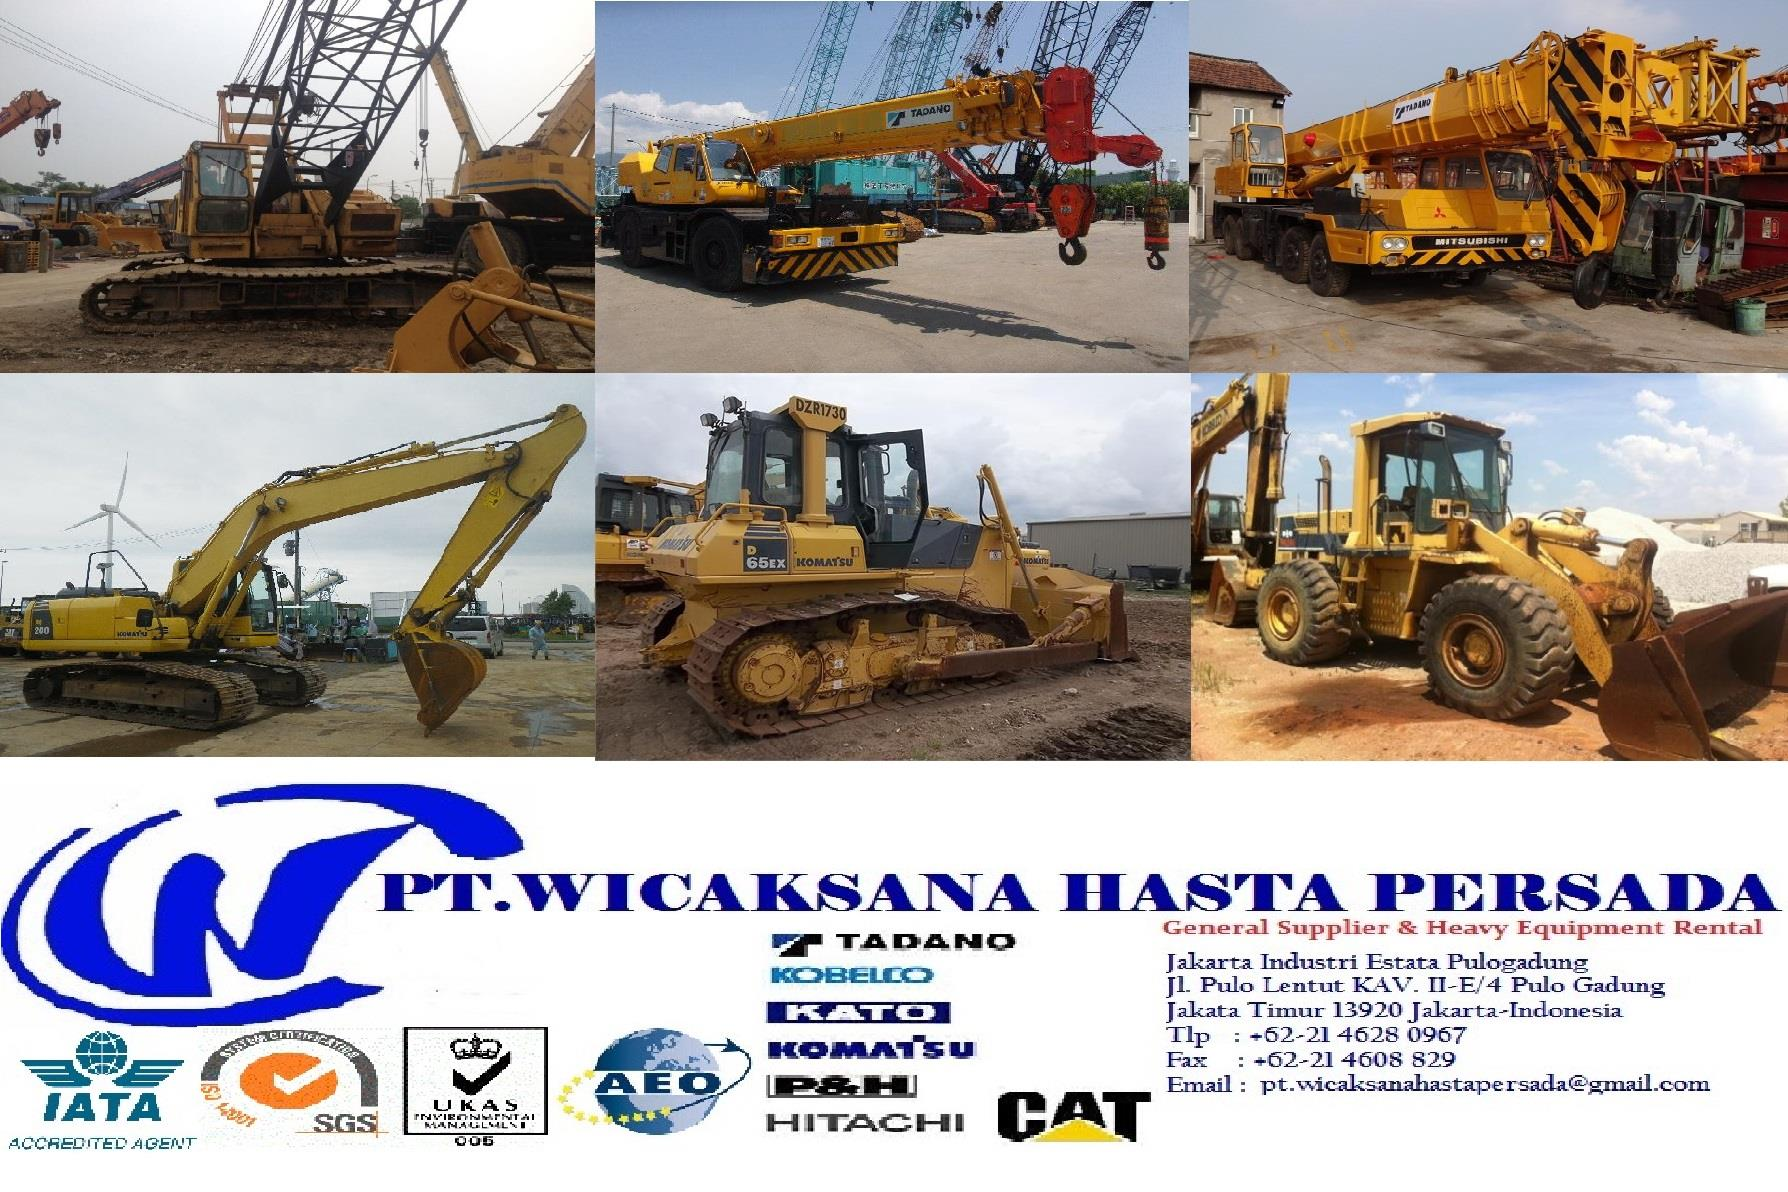 Sell Leasing Equipment From Indonesia By Ud Wicasana